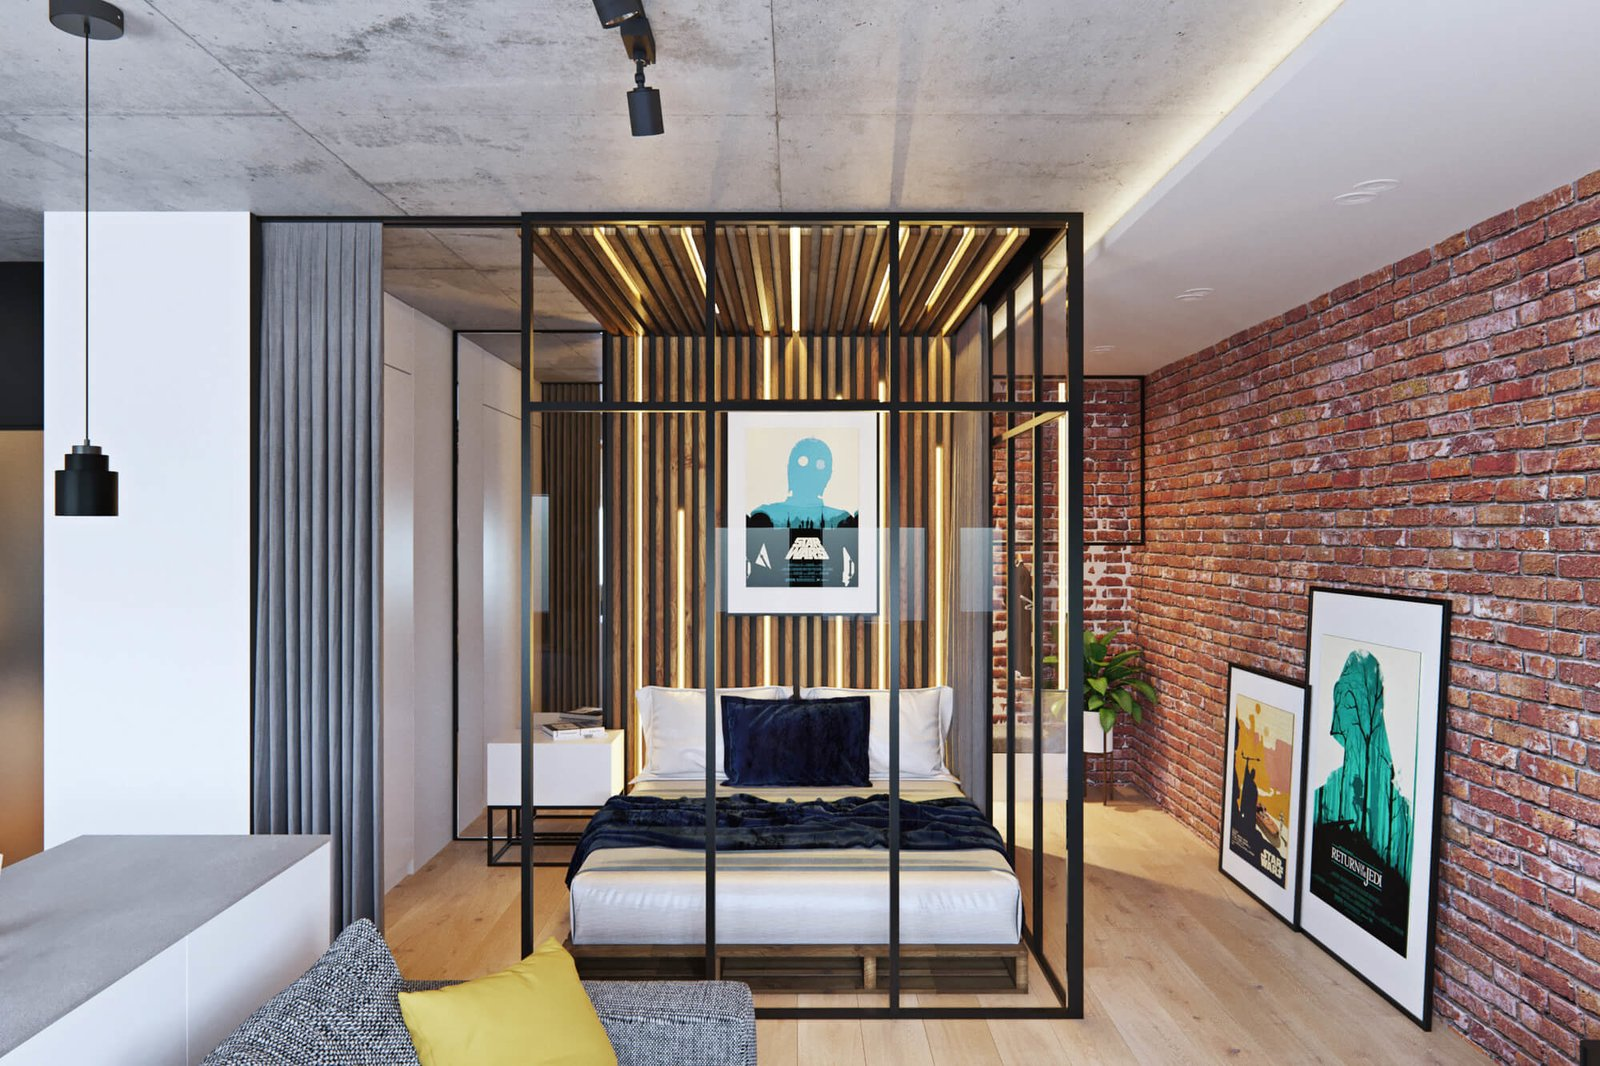 Bedroom and Bed  A Contemporary Apartment for a Single Man in Moscow